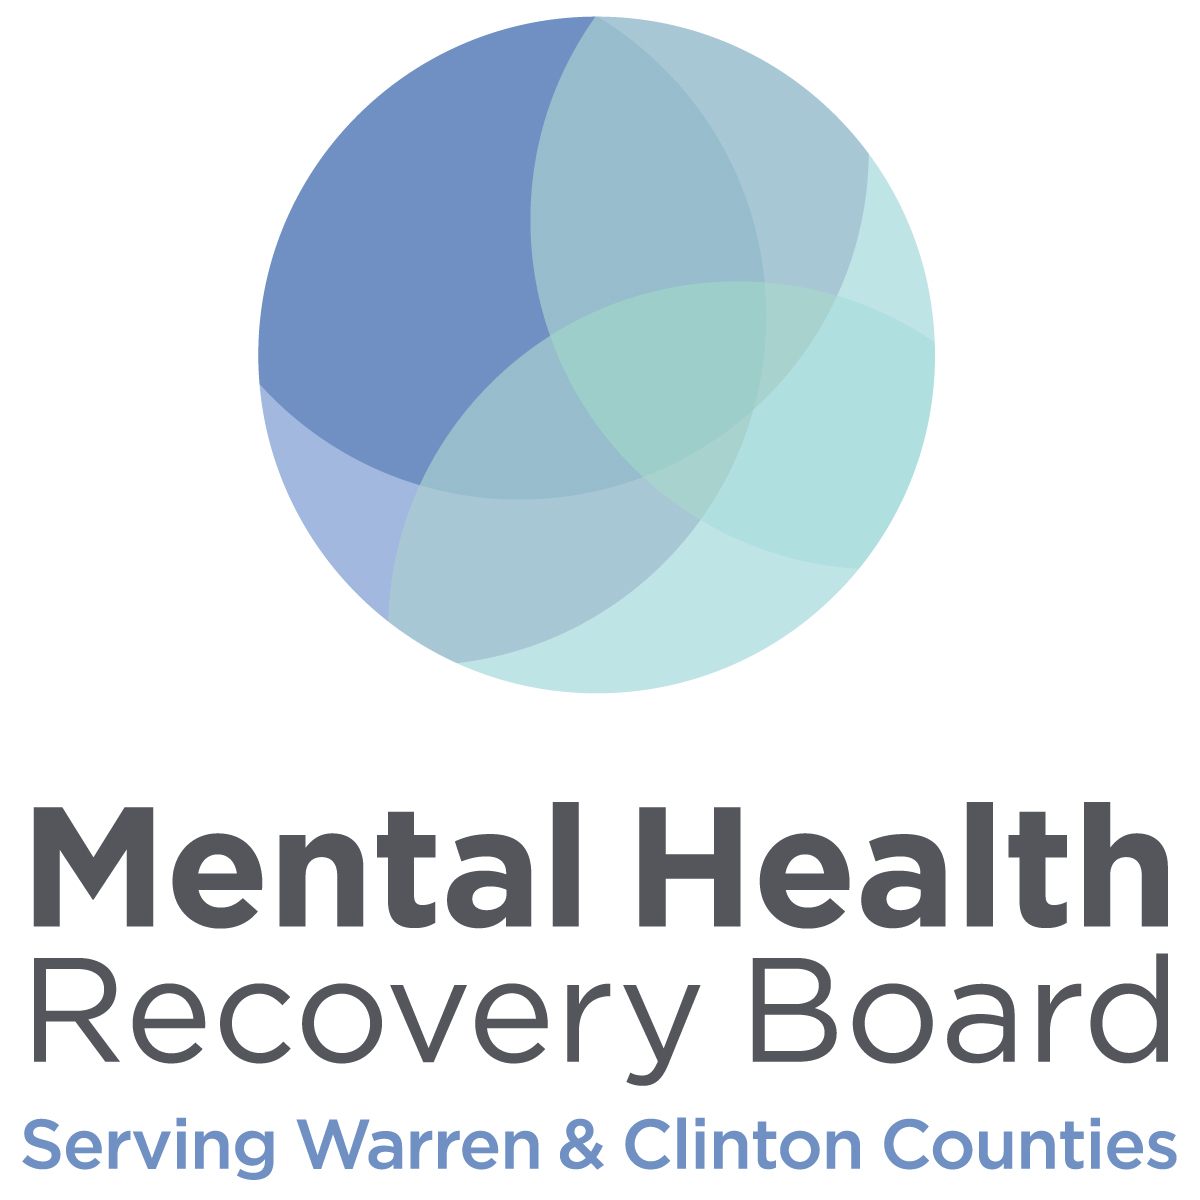 Mental Health Recovery Board Serving Warren & Clinton Counties Logo